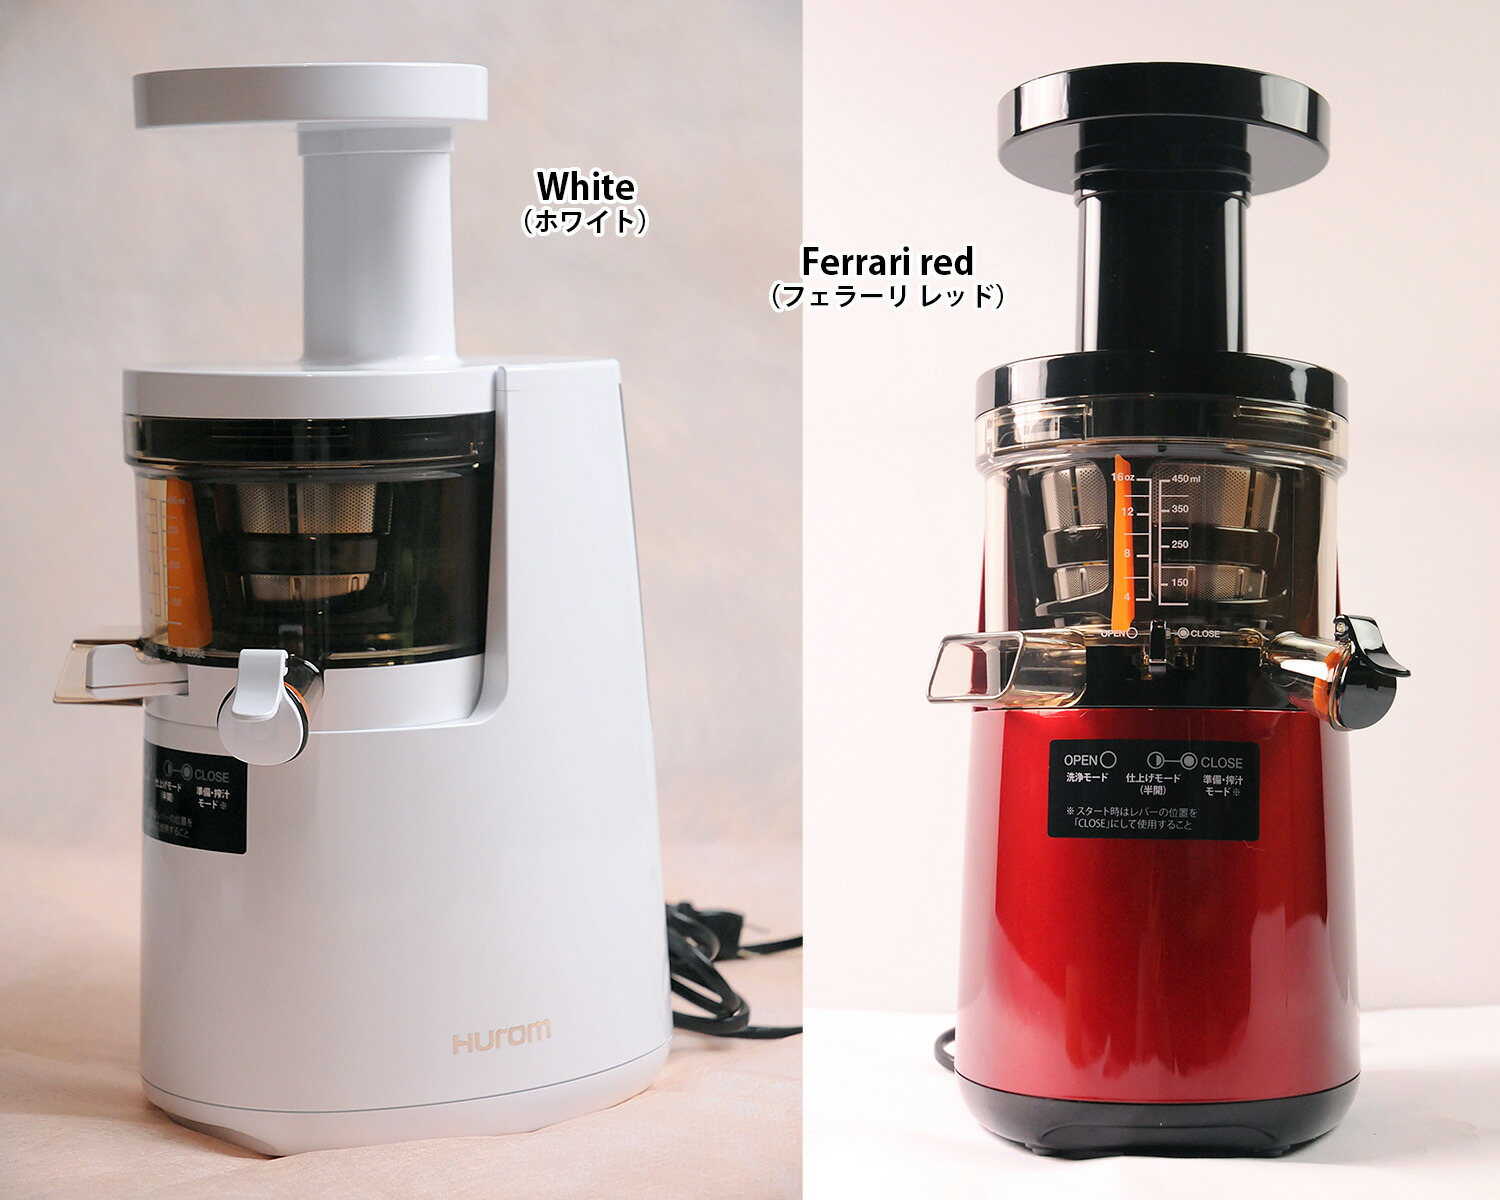 Hurom Slow Juicer Serial Number : Smart Kitchen Rakuten Global Market: HUROM slow juicer H2H and Hulme